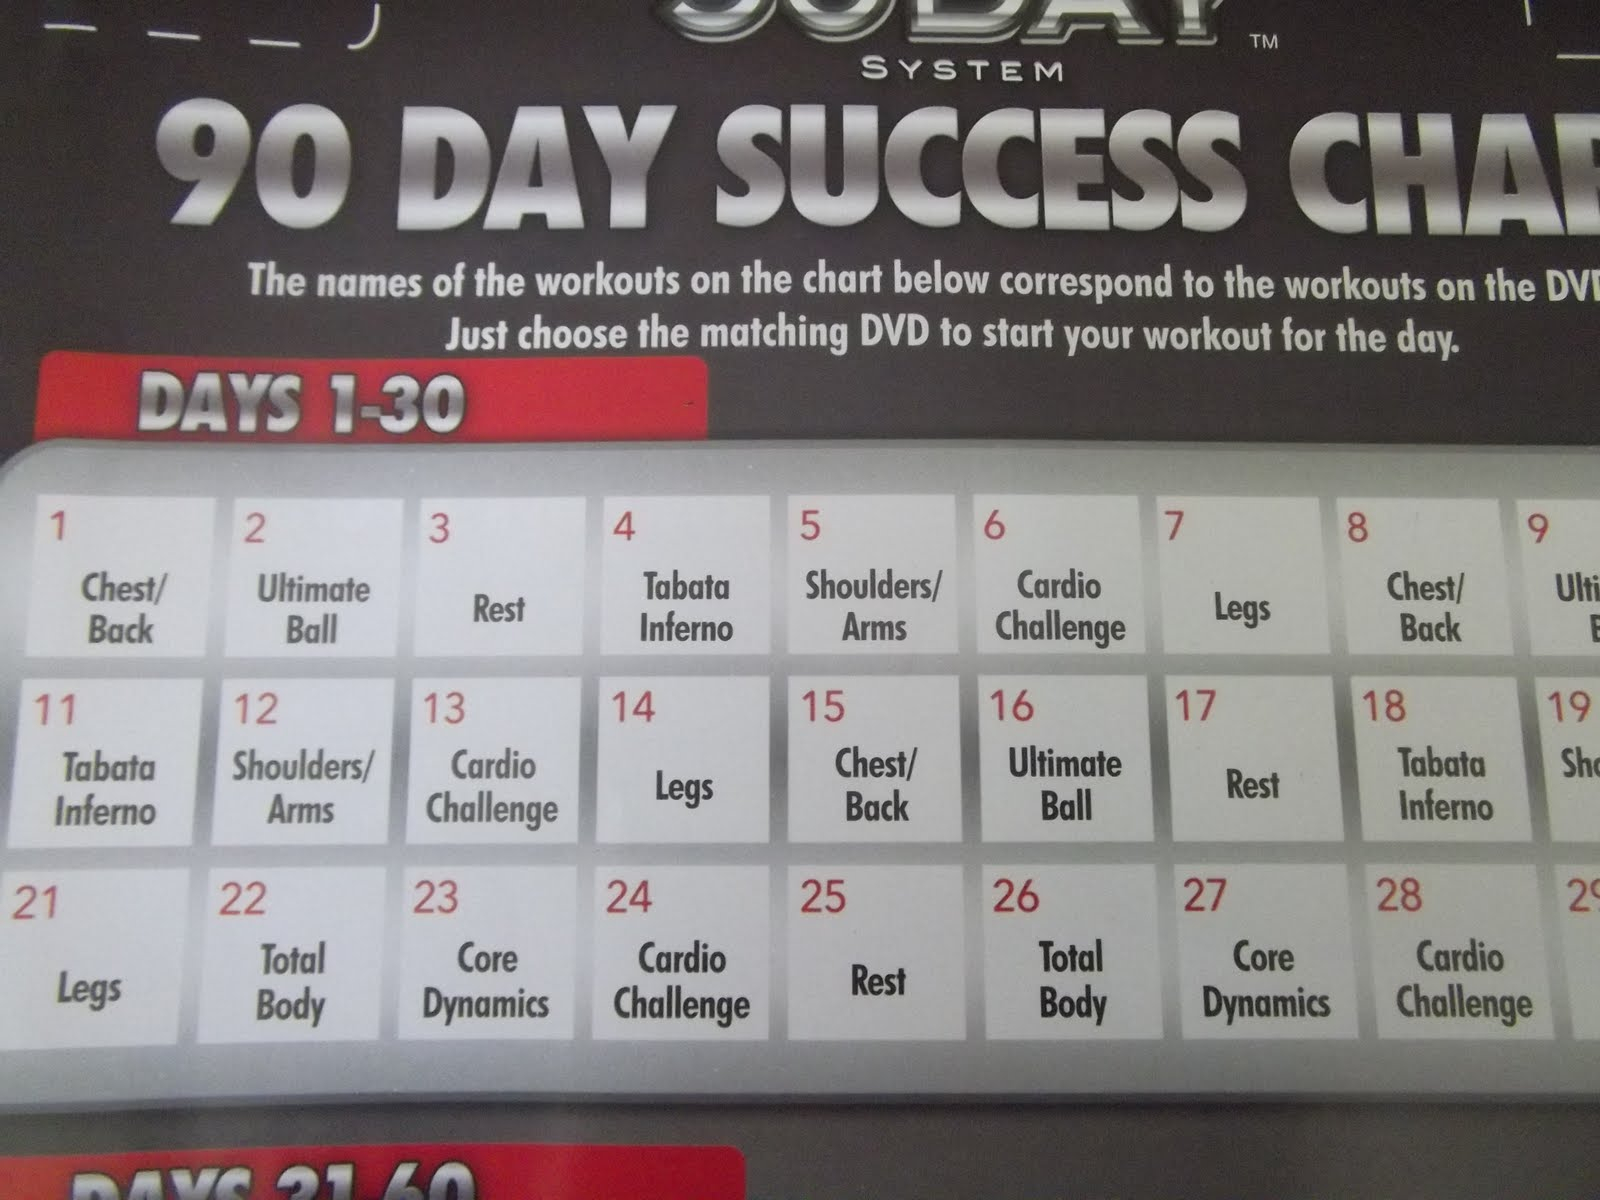 Supreme 90 Day Workout Cardio Challenge - Workoutwalls For 90 Day Supreme Workout Schedule